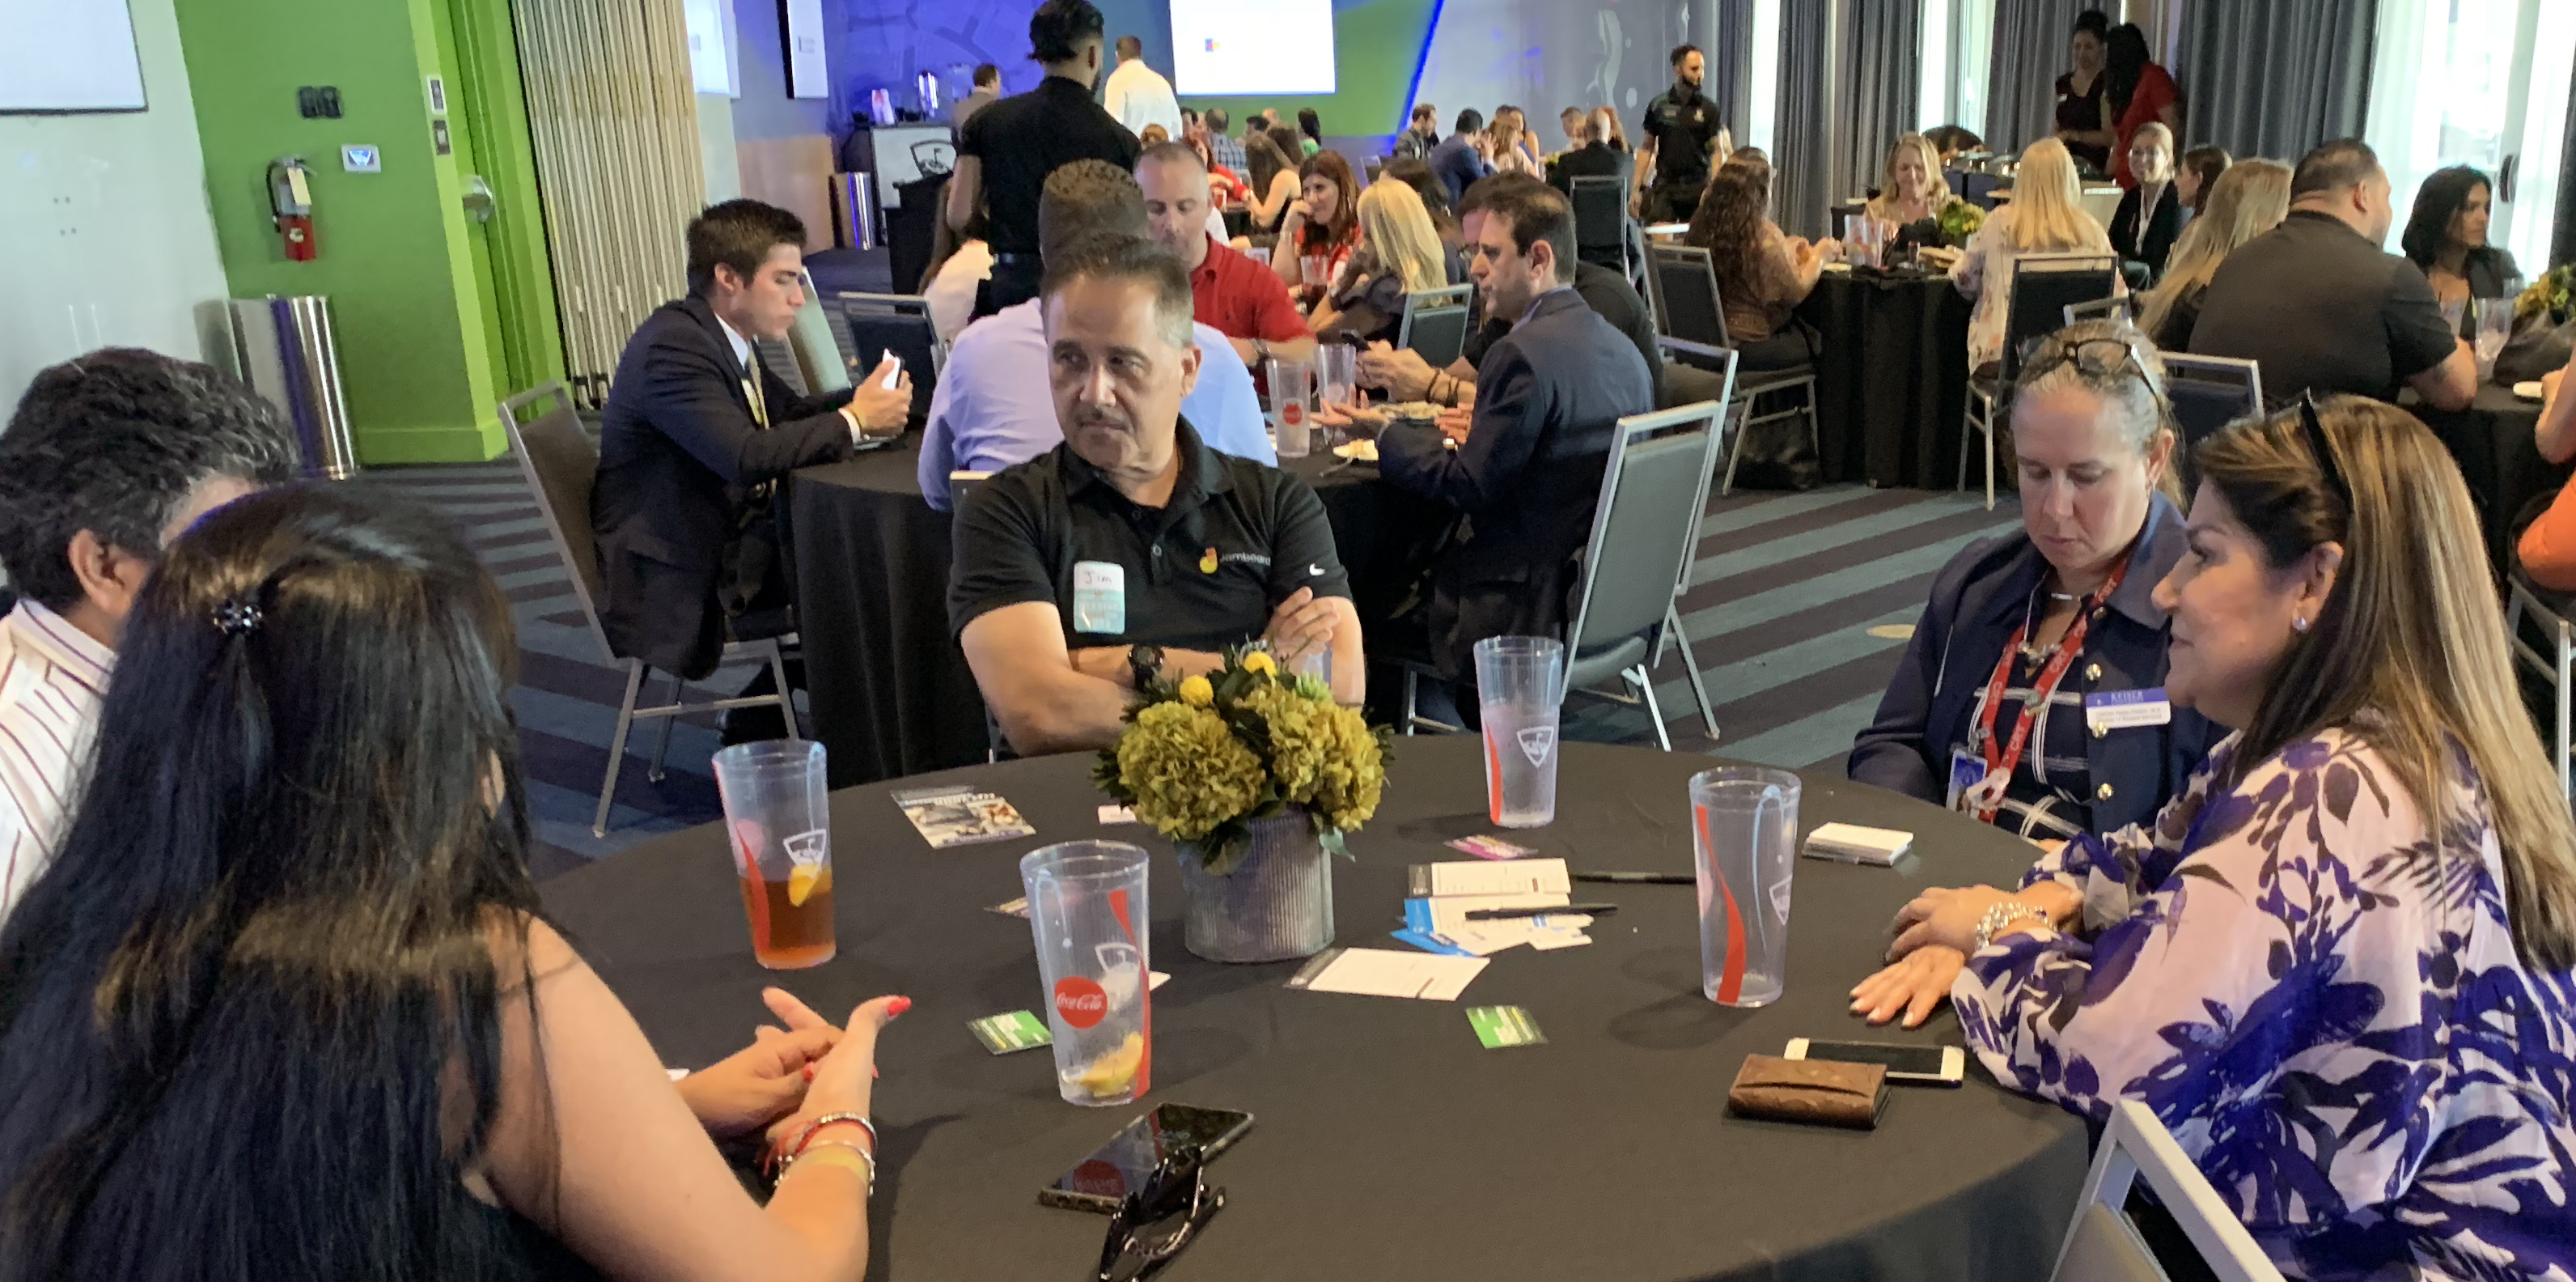 Doral Chamber of Commerce introduces members networking in a table at Topgolf Doral.